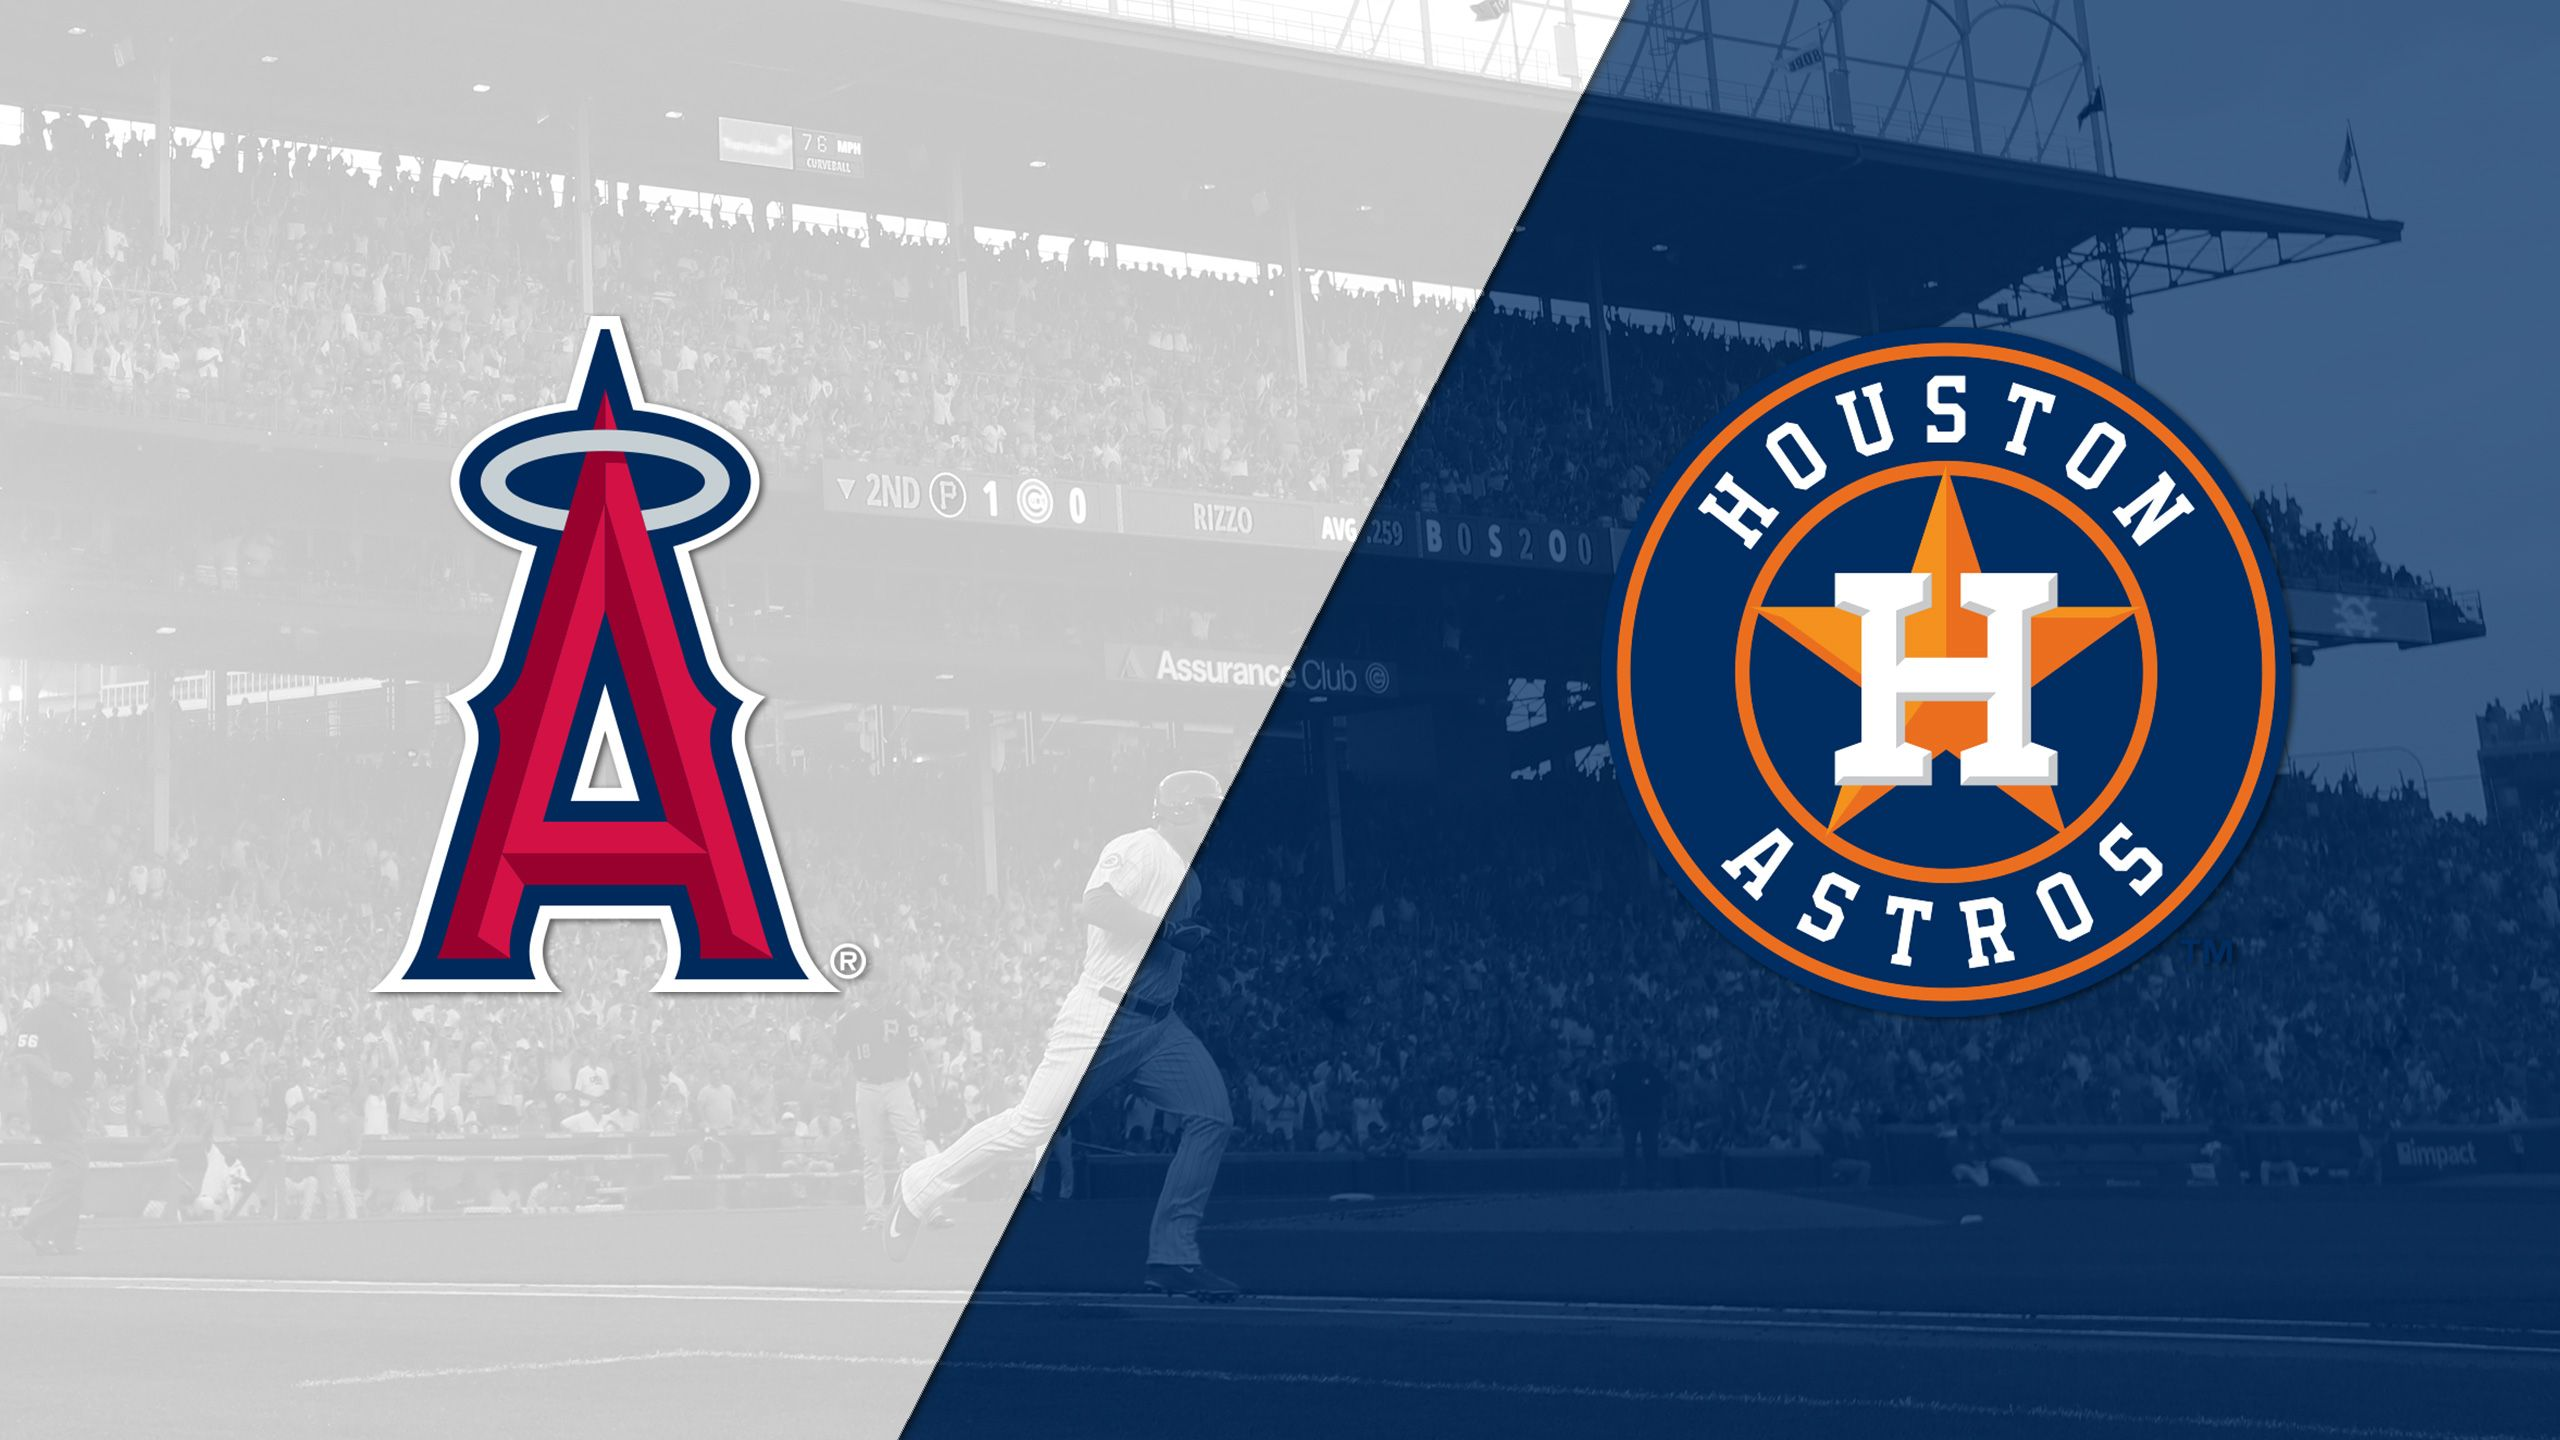 In Spanish - In Spanish - Los Angeles Angels of Anaheim vs. Houston Astros